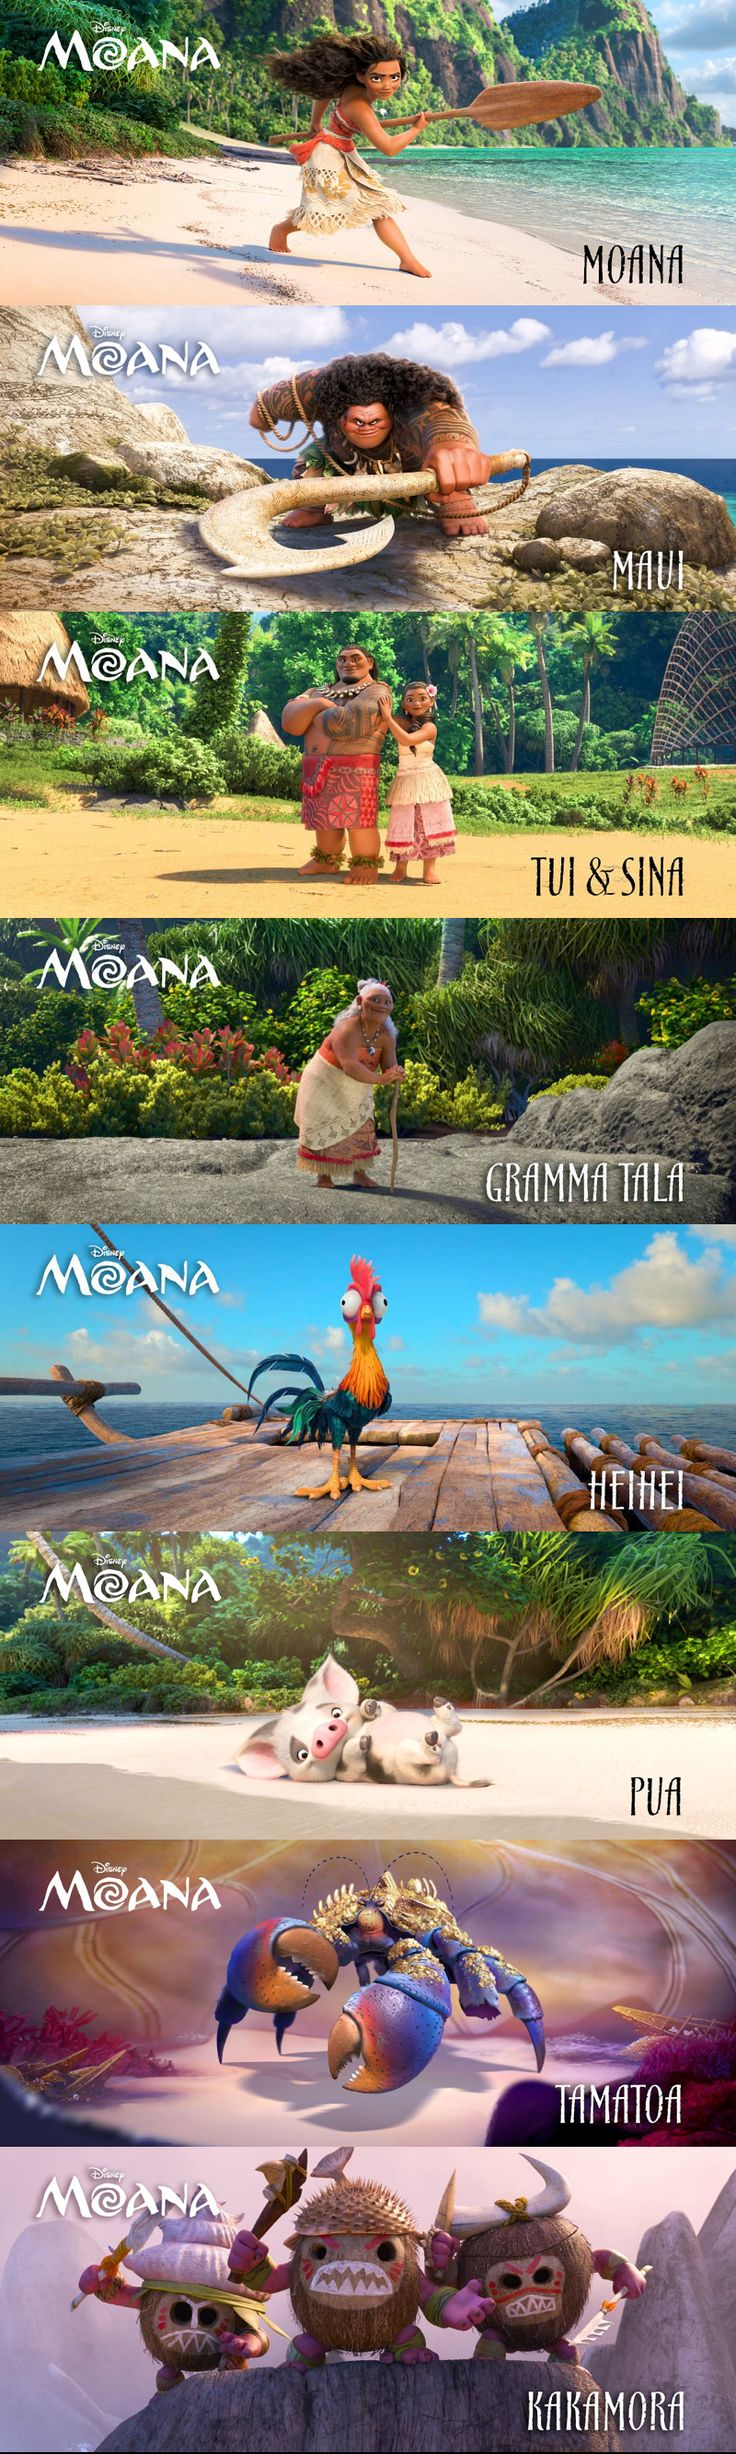 Up until now we knew a little about the main characters and even less about the supporting ones, so jump in and learn all about your soon-to-be-favorite Disney film, Moana!